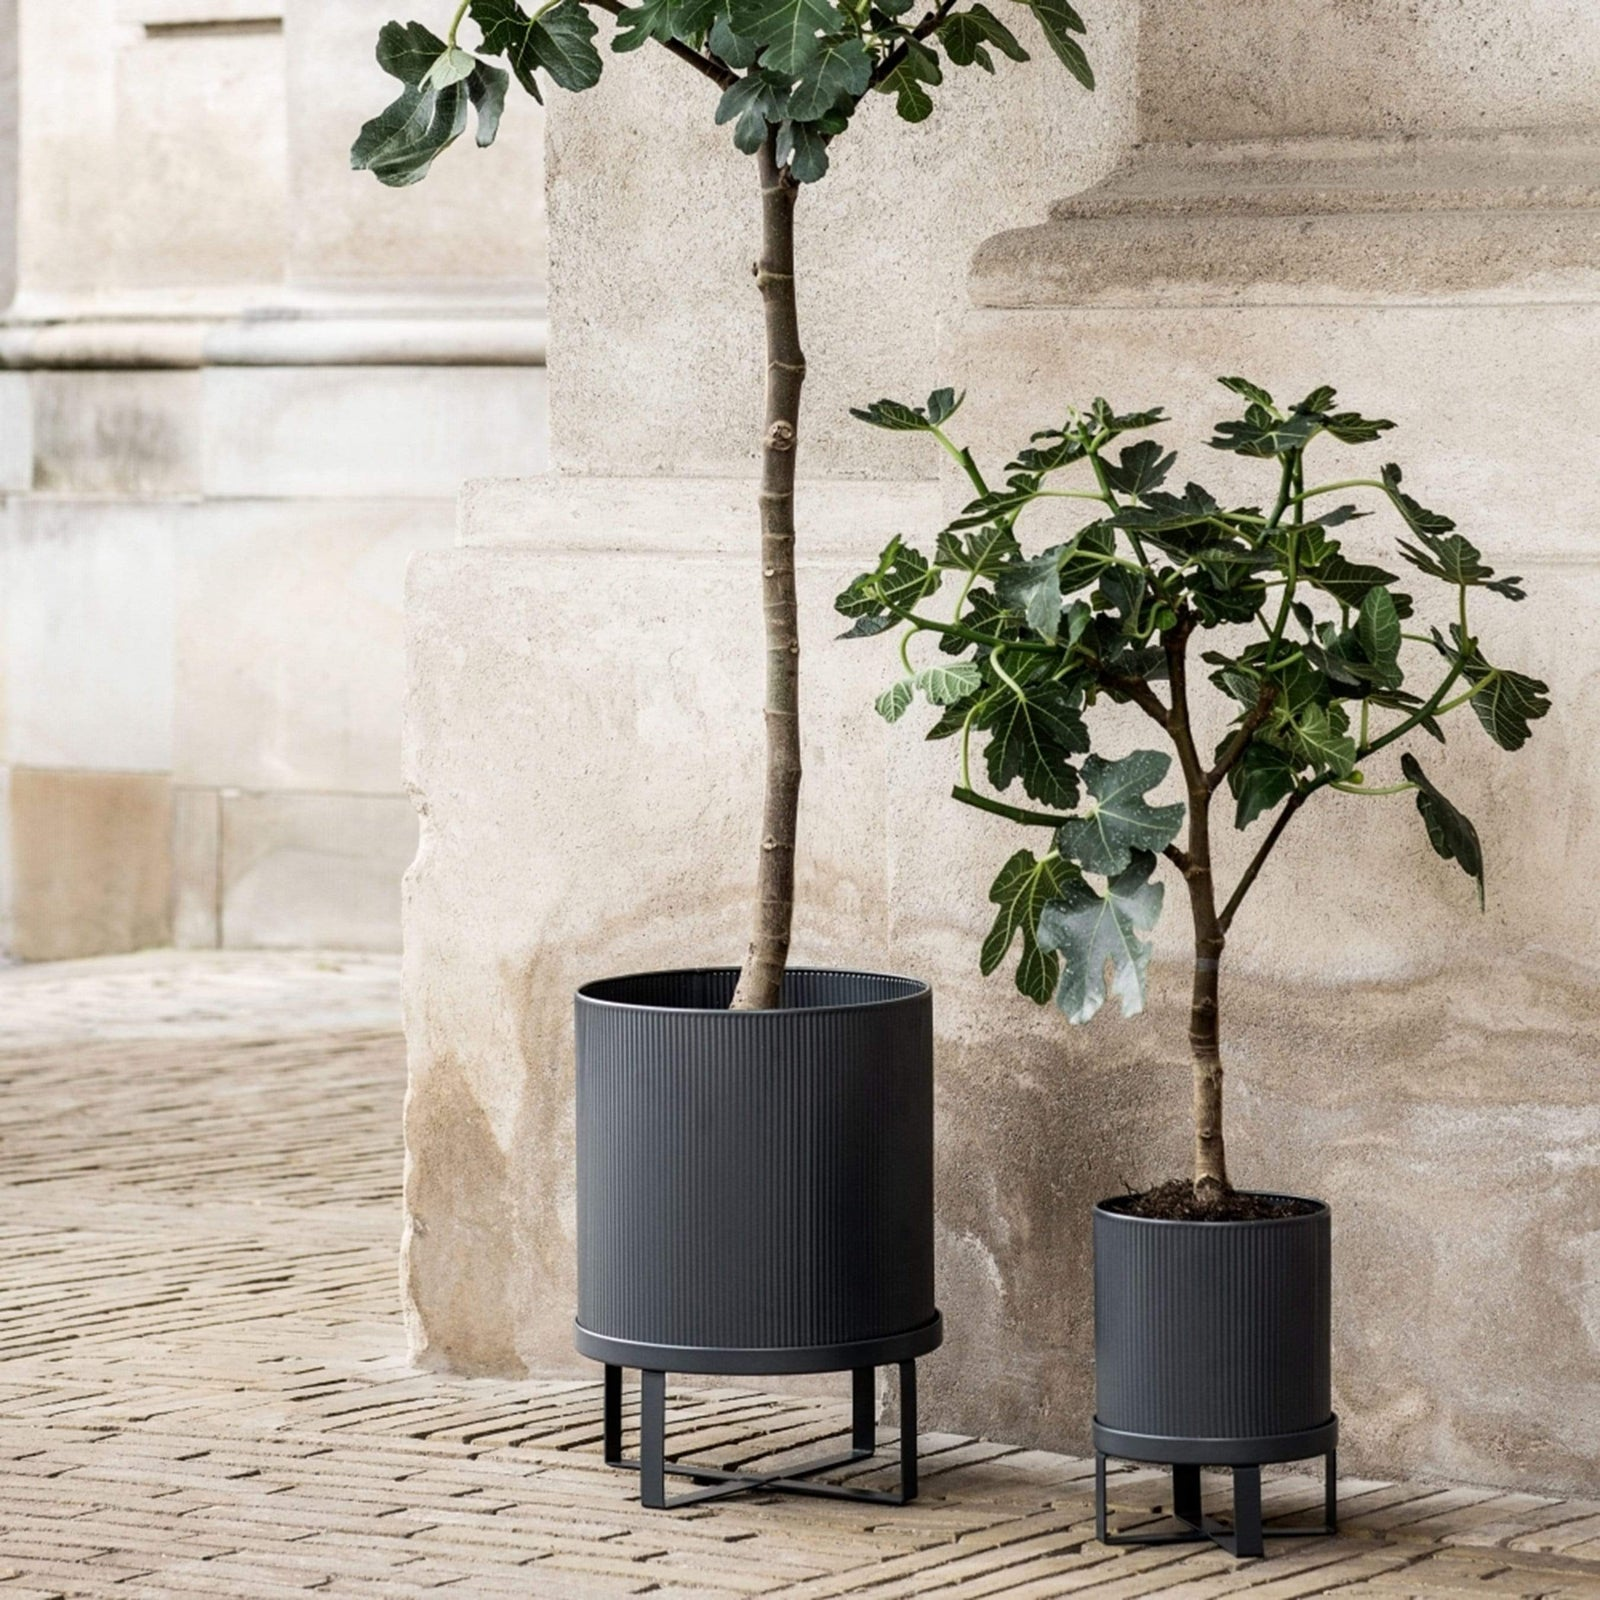 Ferm Living Garden Black Bau Pot, Small